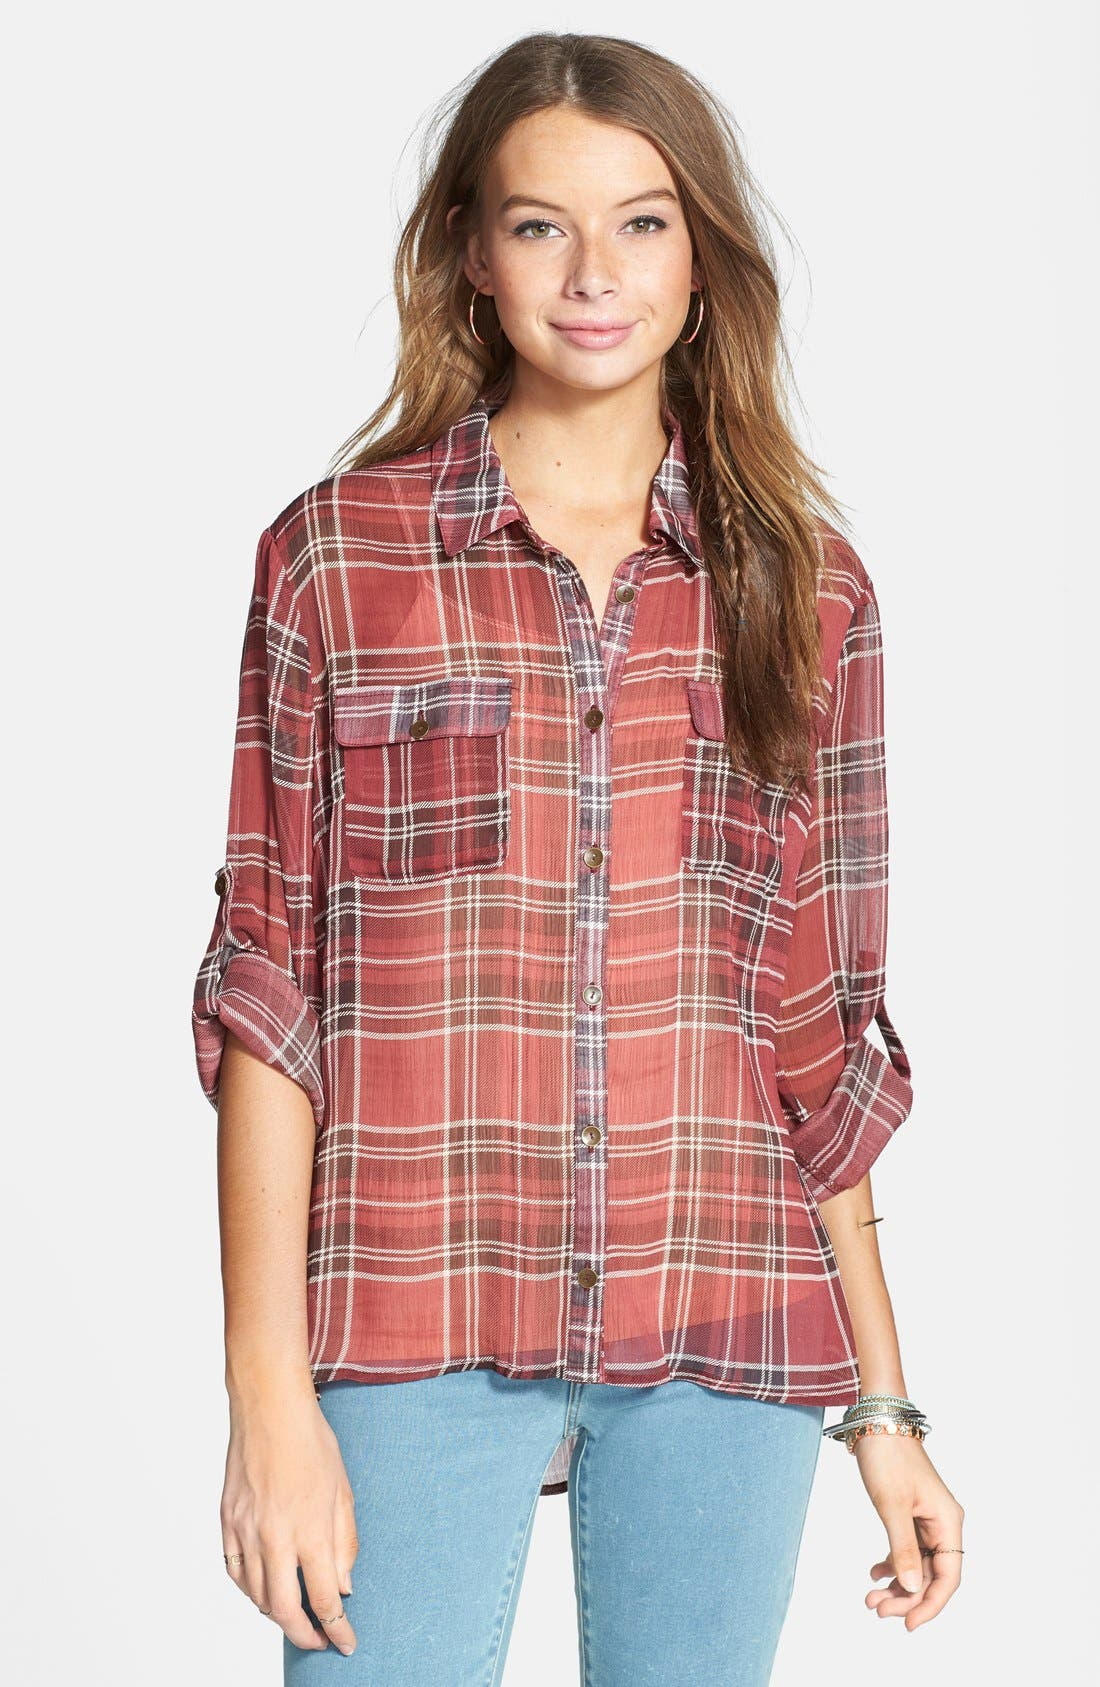 Alternate Image 1 Selected - Band of Gypsies Plaid Crochet Back Yoke Chiffon Shirt (Juniors)